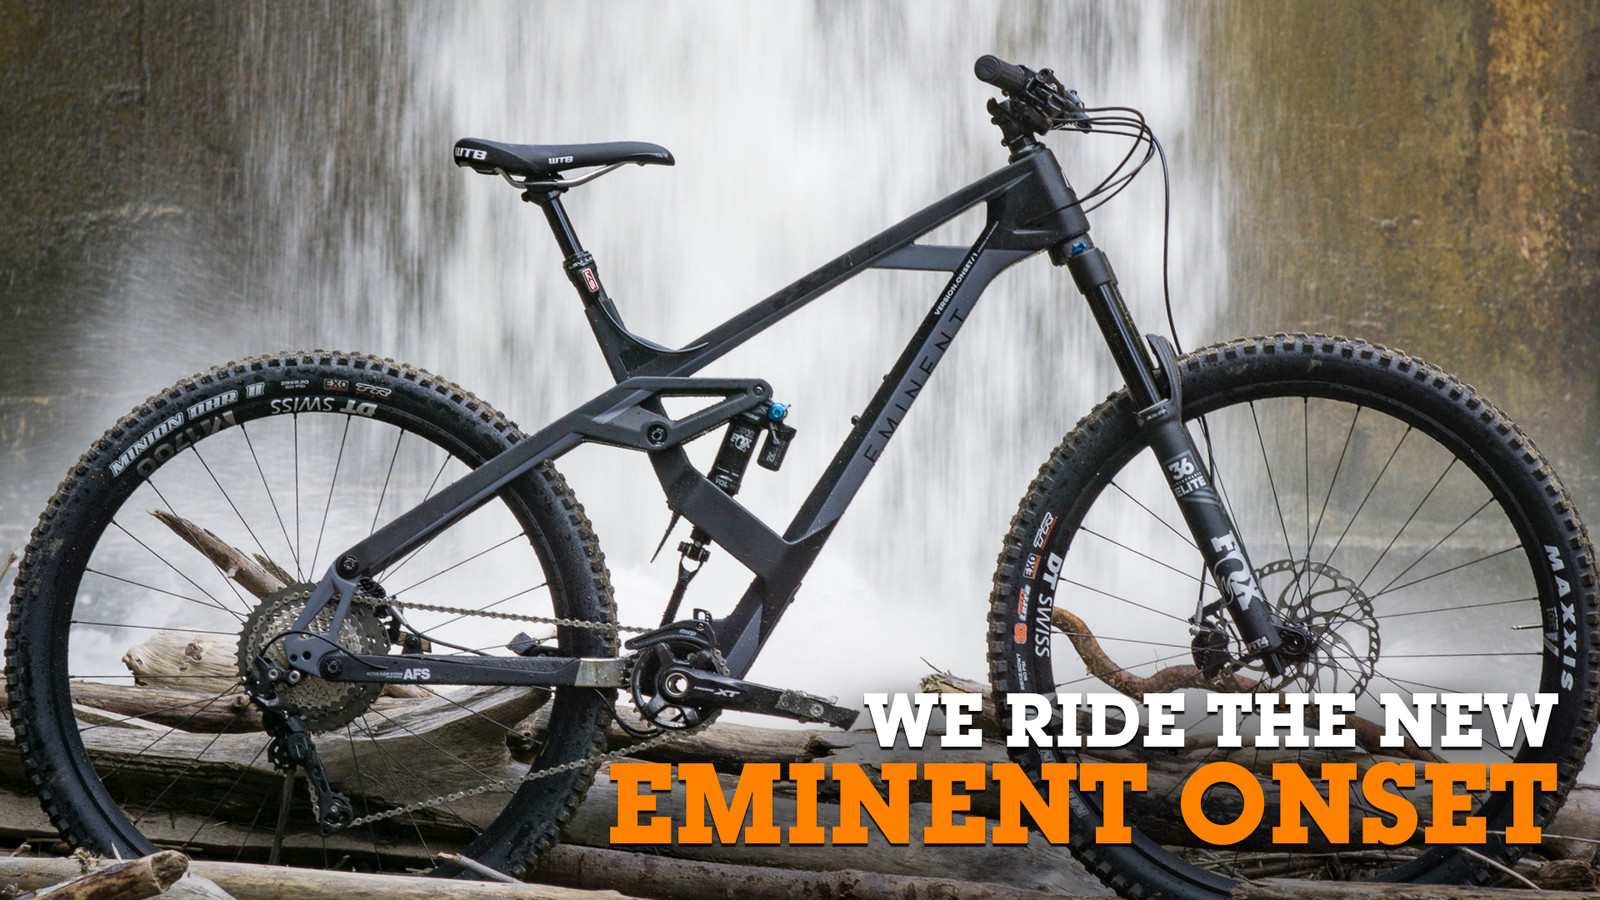 The New Eminent Onset 29er - Does the Bite Match the Bark?